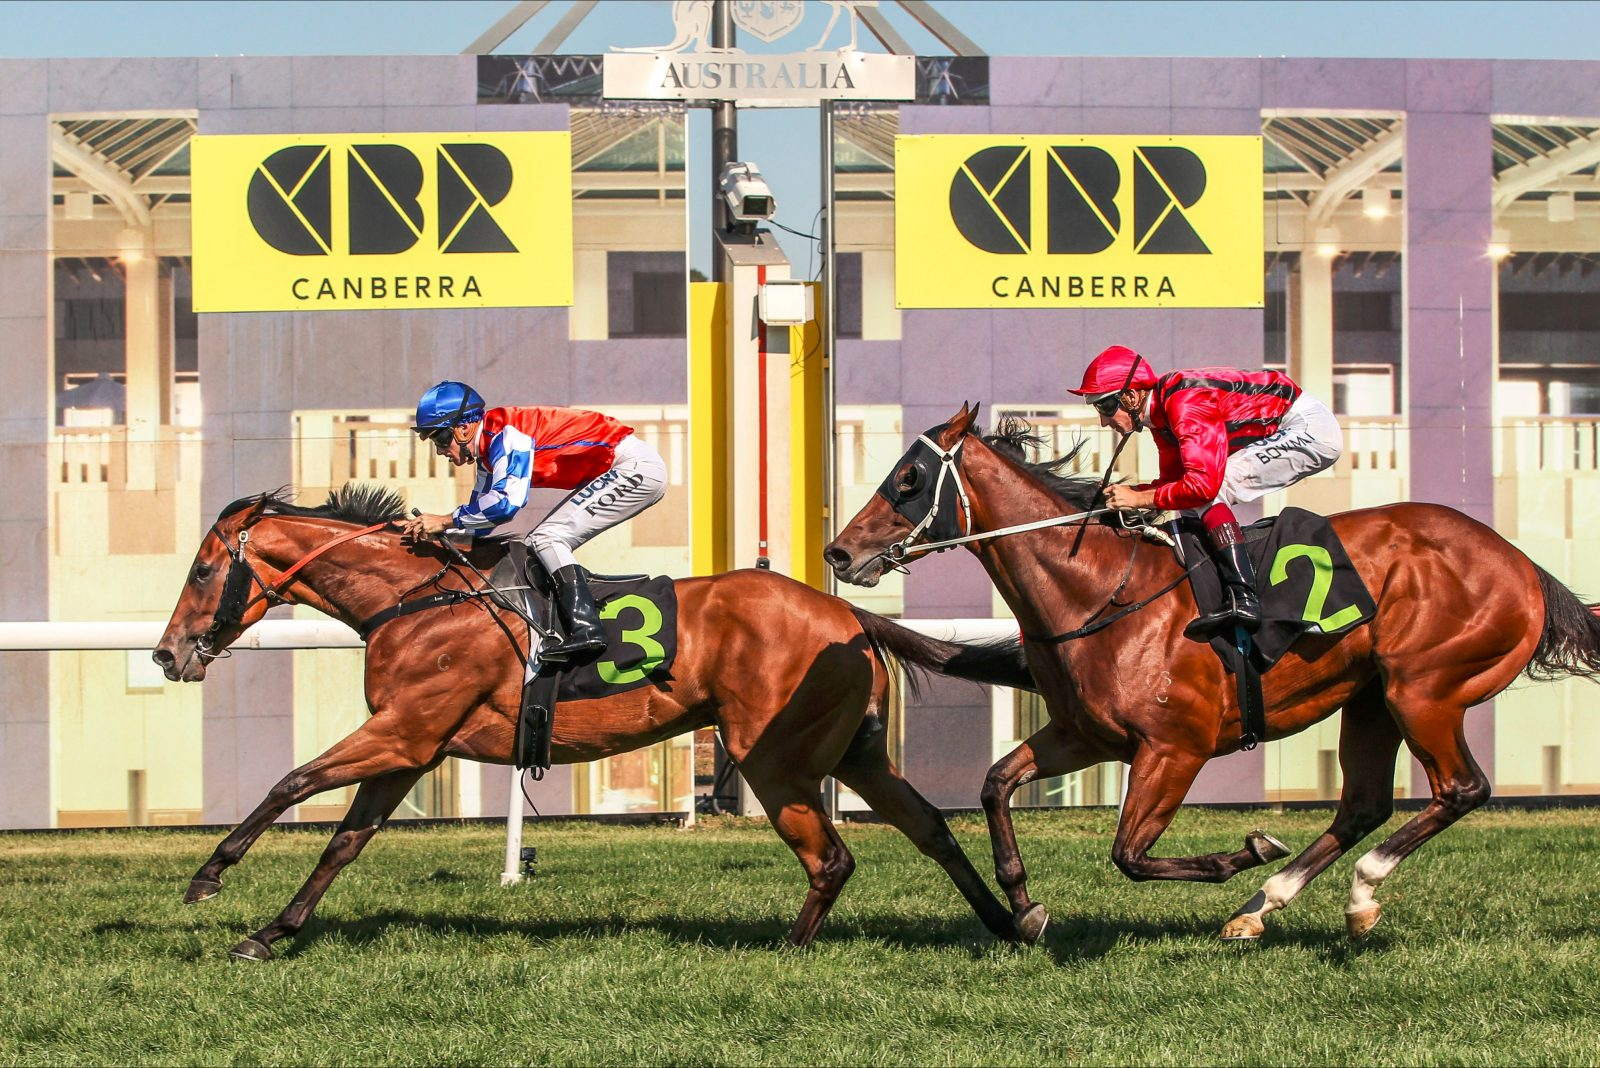 Horses race to the finish line